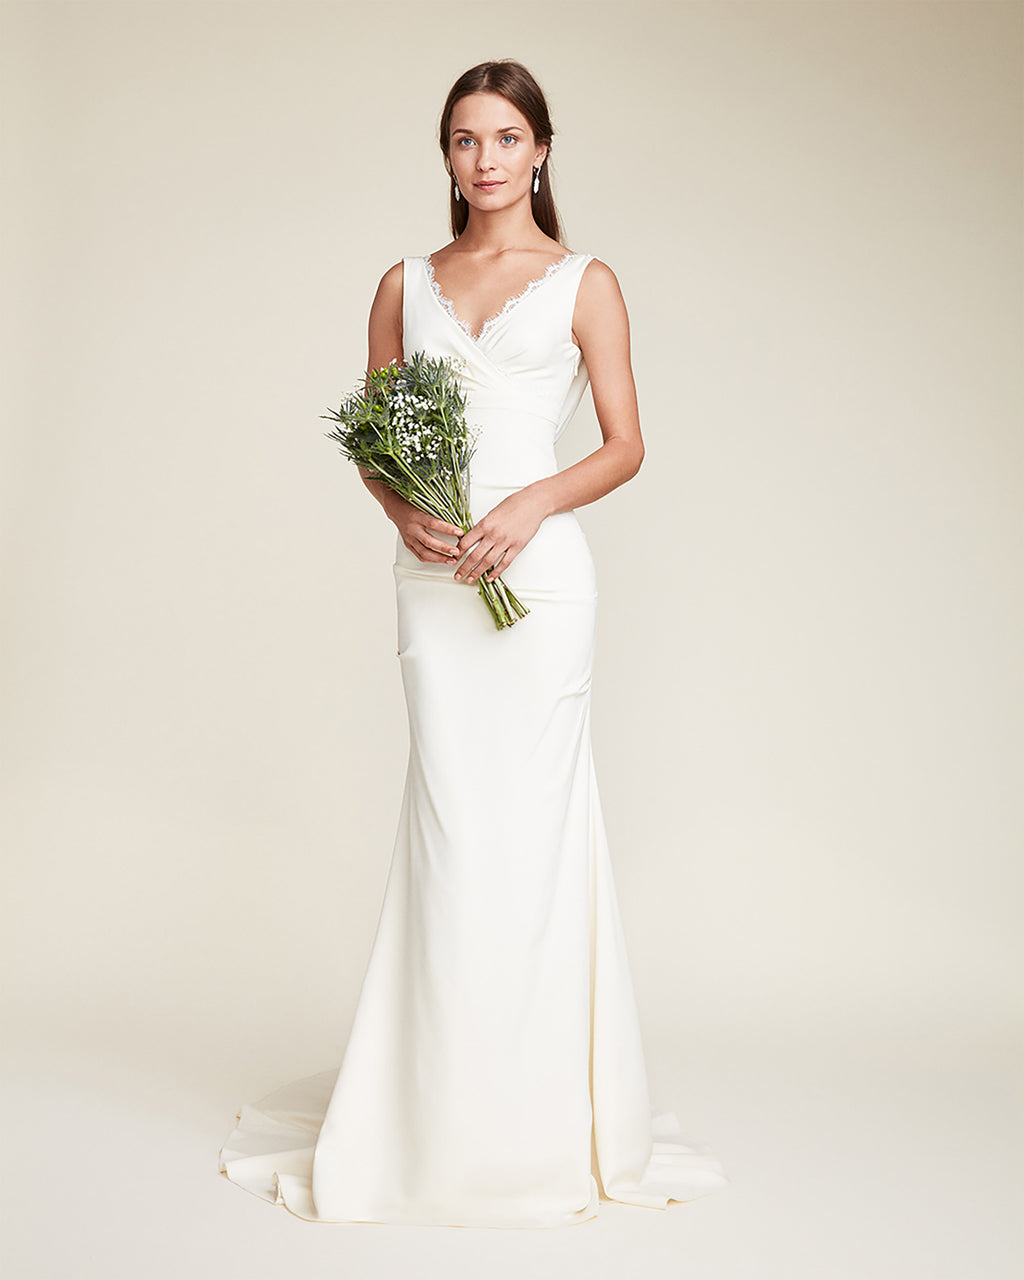 FJ10003 - NINA GOWN - bridal collection - bridal - A sophisticated scalloped neck line and draped open back with lace details add elegance to this bridal gown. Finished in a luxurious silk, this gown is fully lined and finished with a concealed zipper for closure.~fsbr